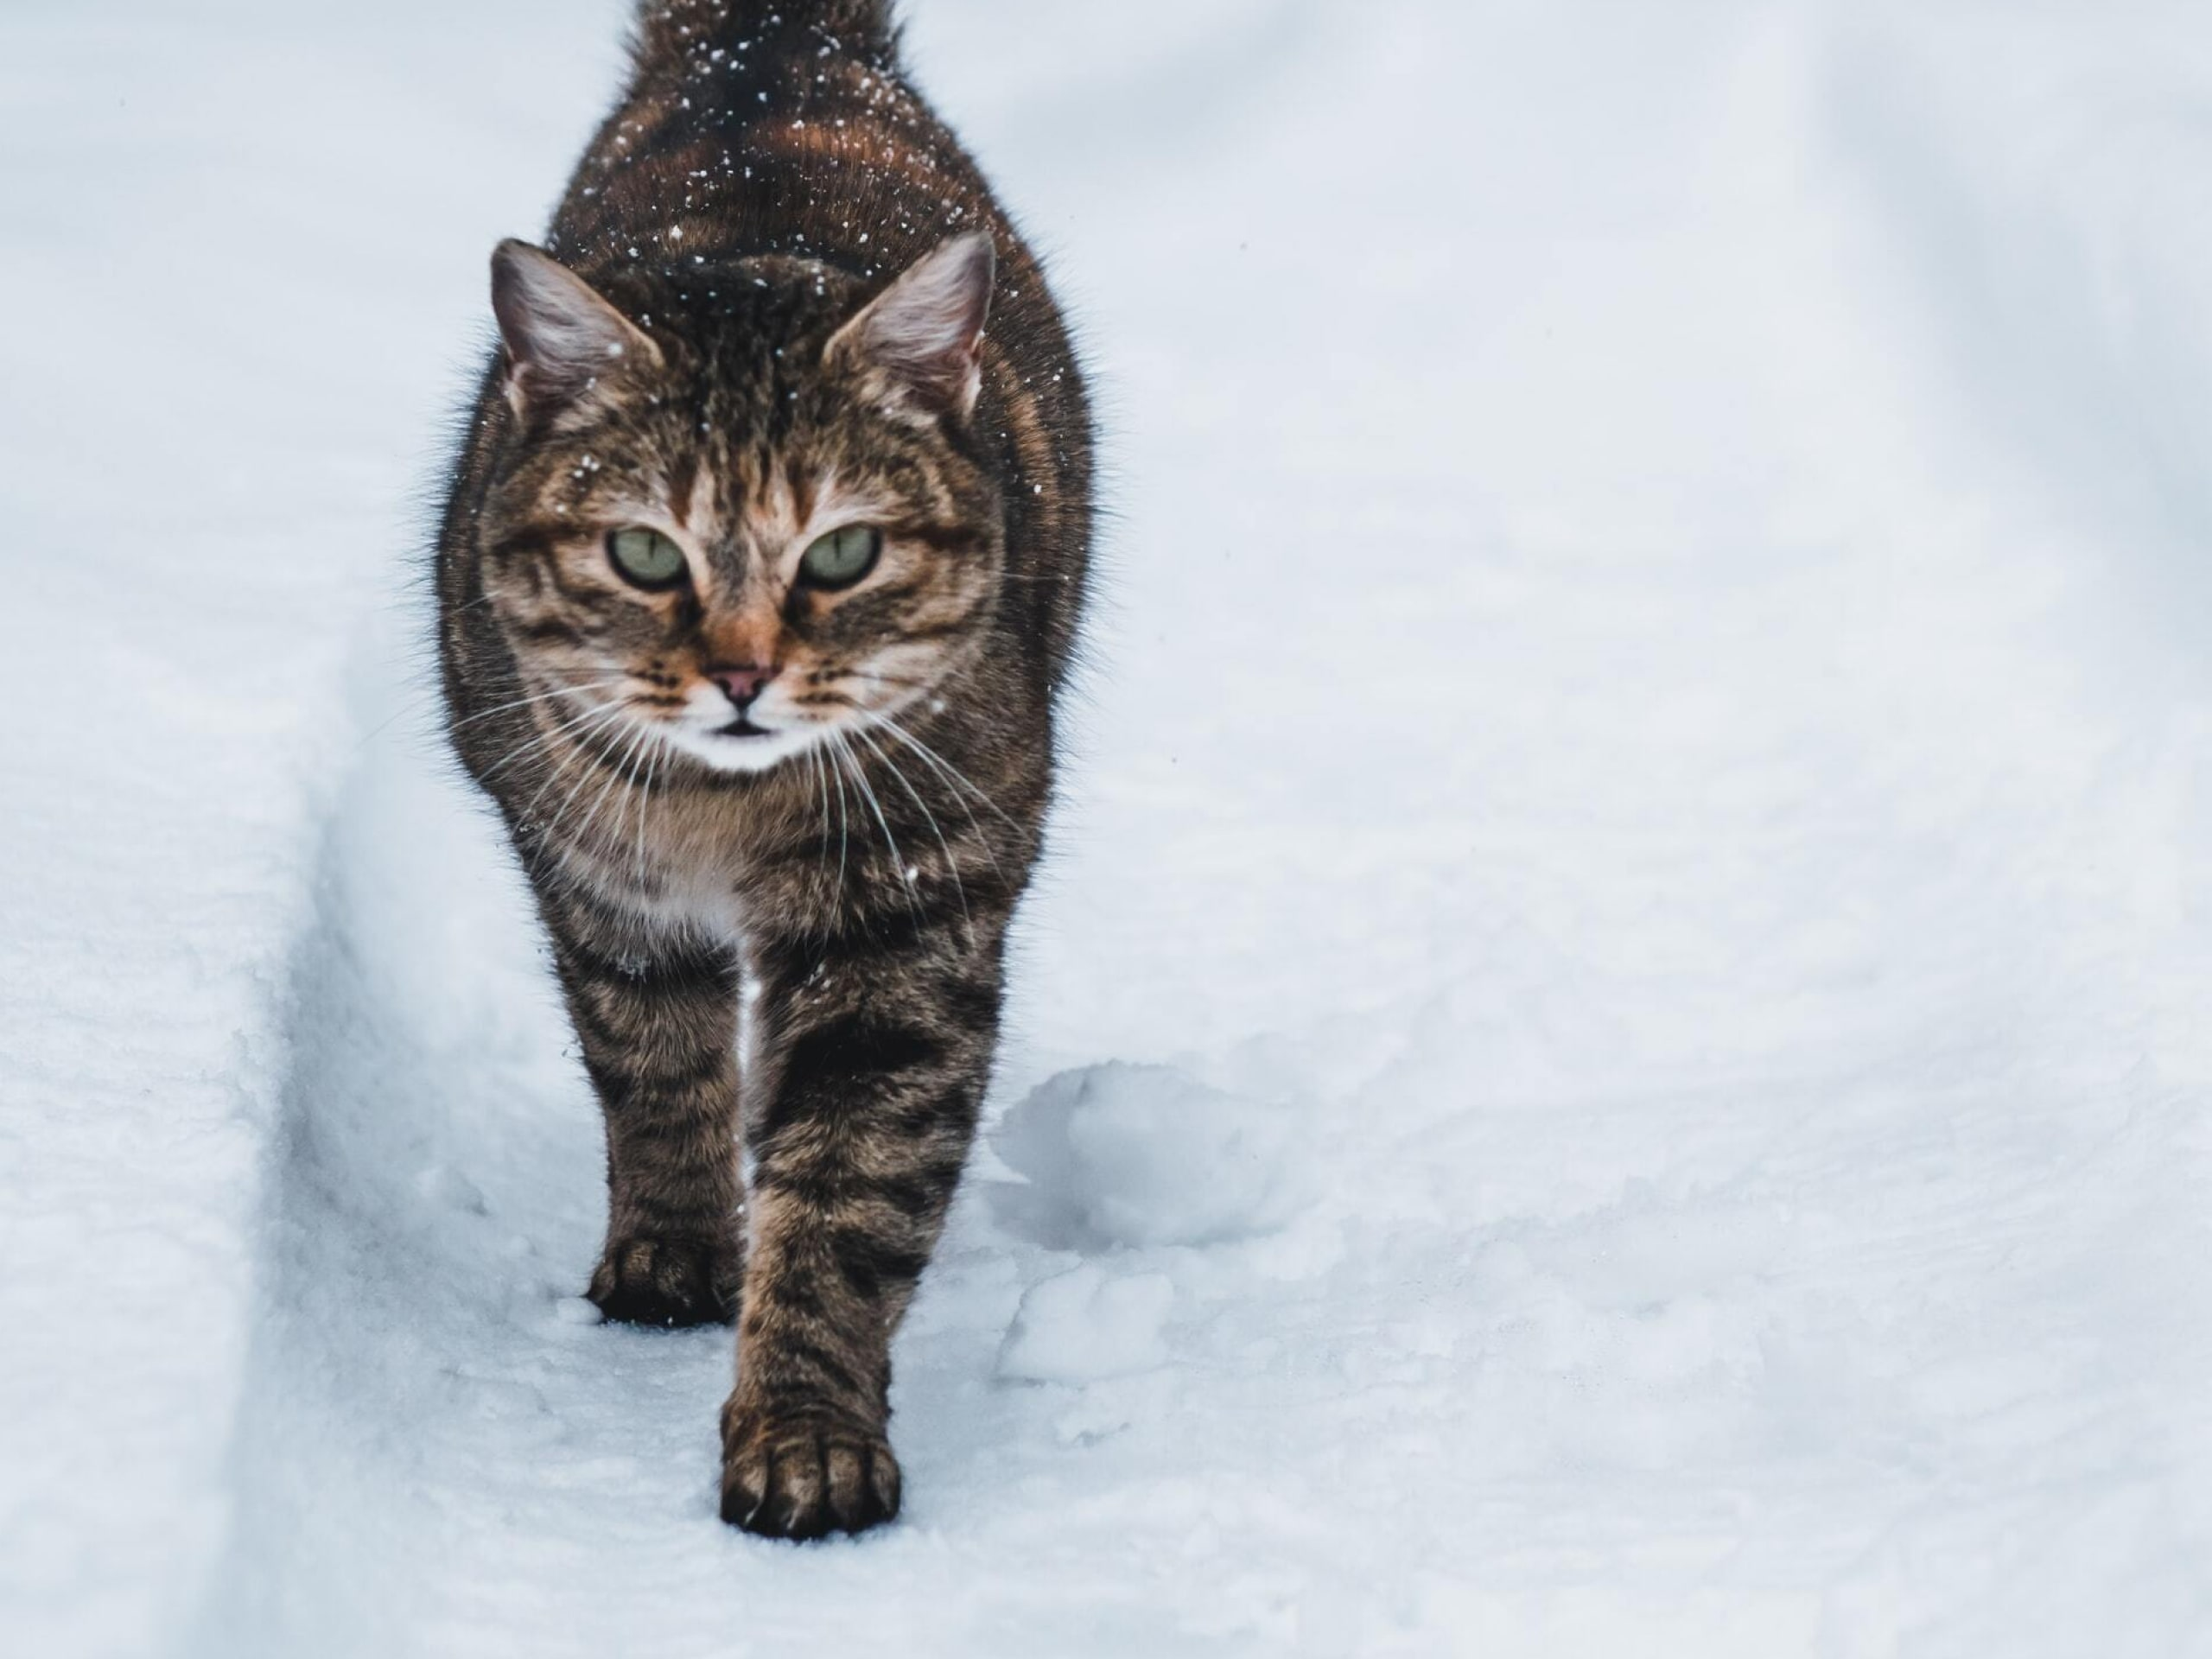 Brown cat with green eyes walking towards camera in the snow.